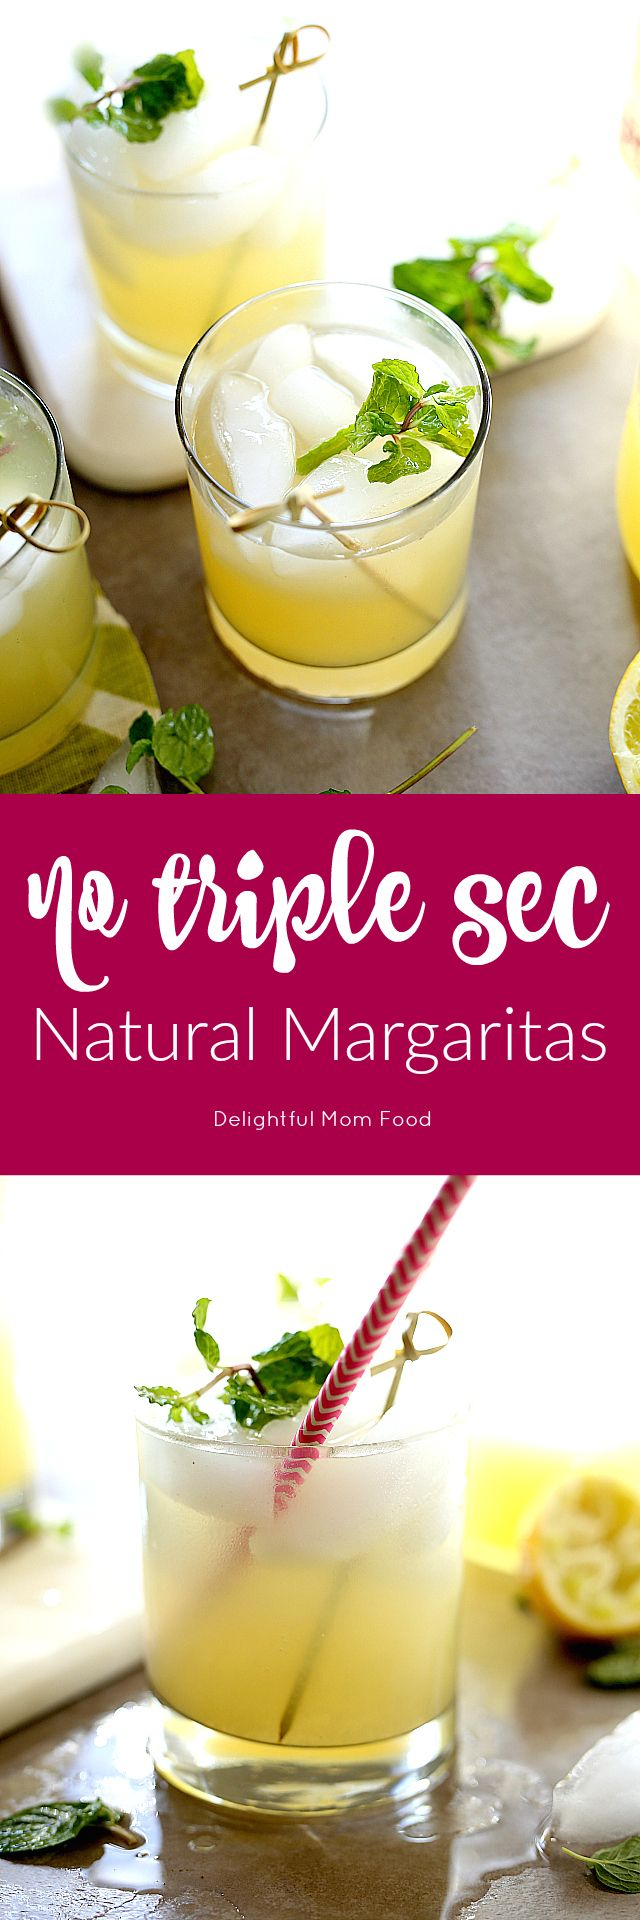 Skinny margarita recipe on the rocks made with 4 simple natural ingredients! No triple sec or processed sugars in this tasty lime enhanced cocktail!